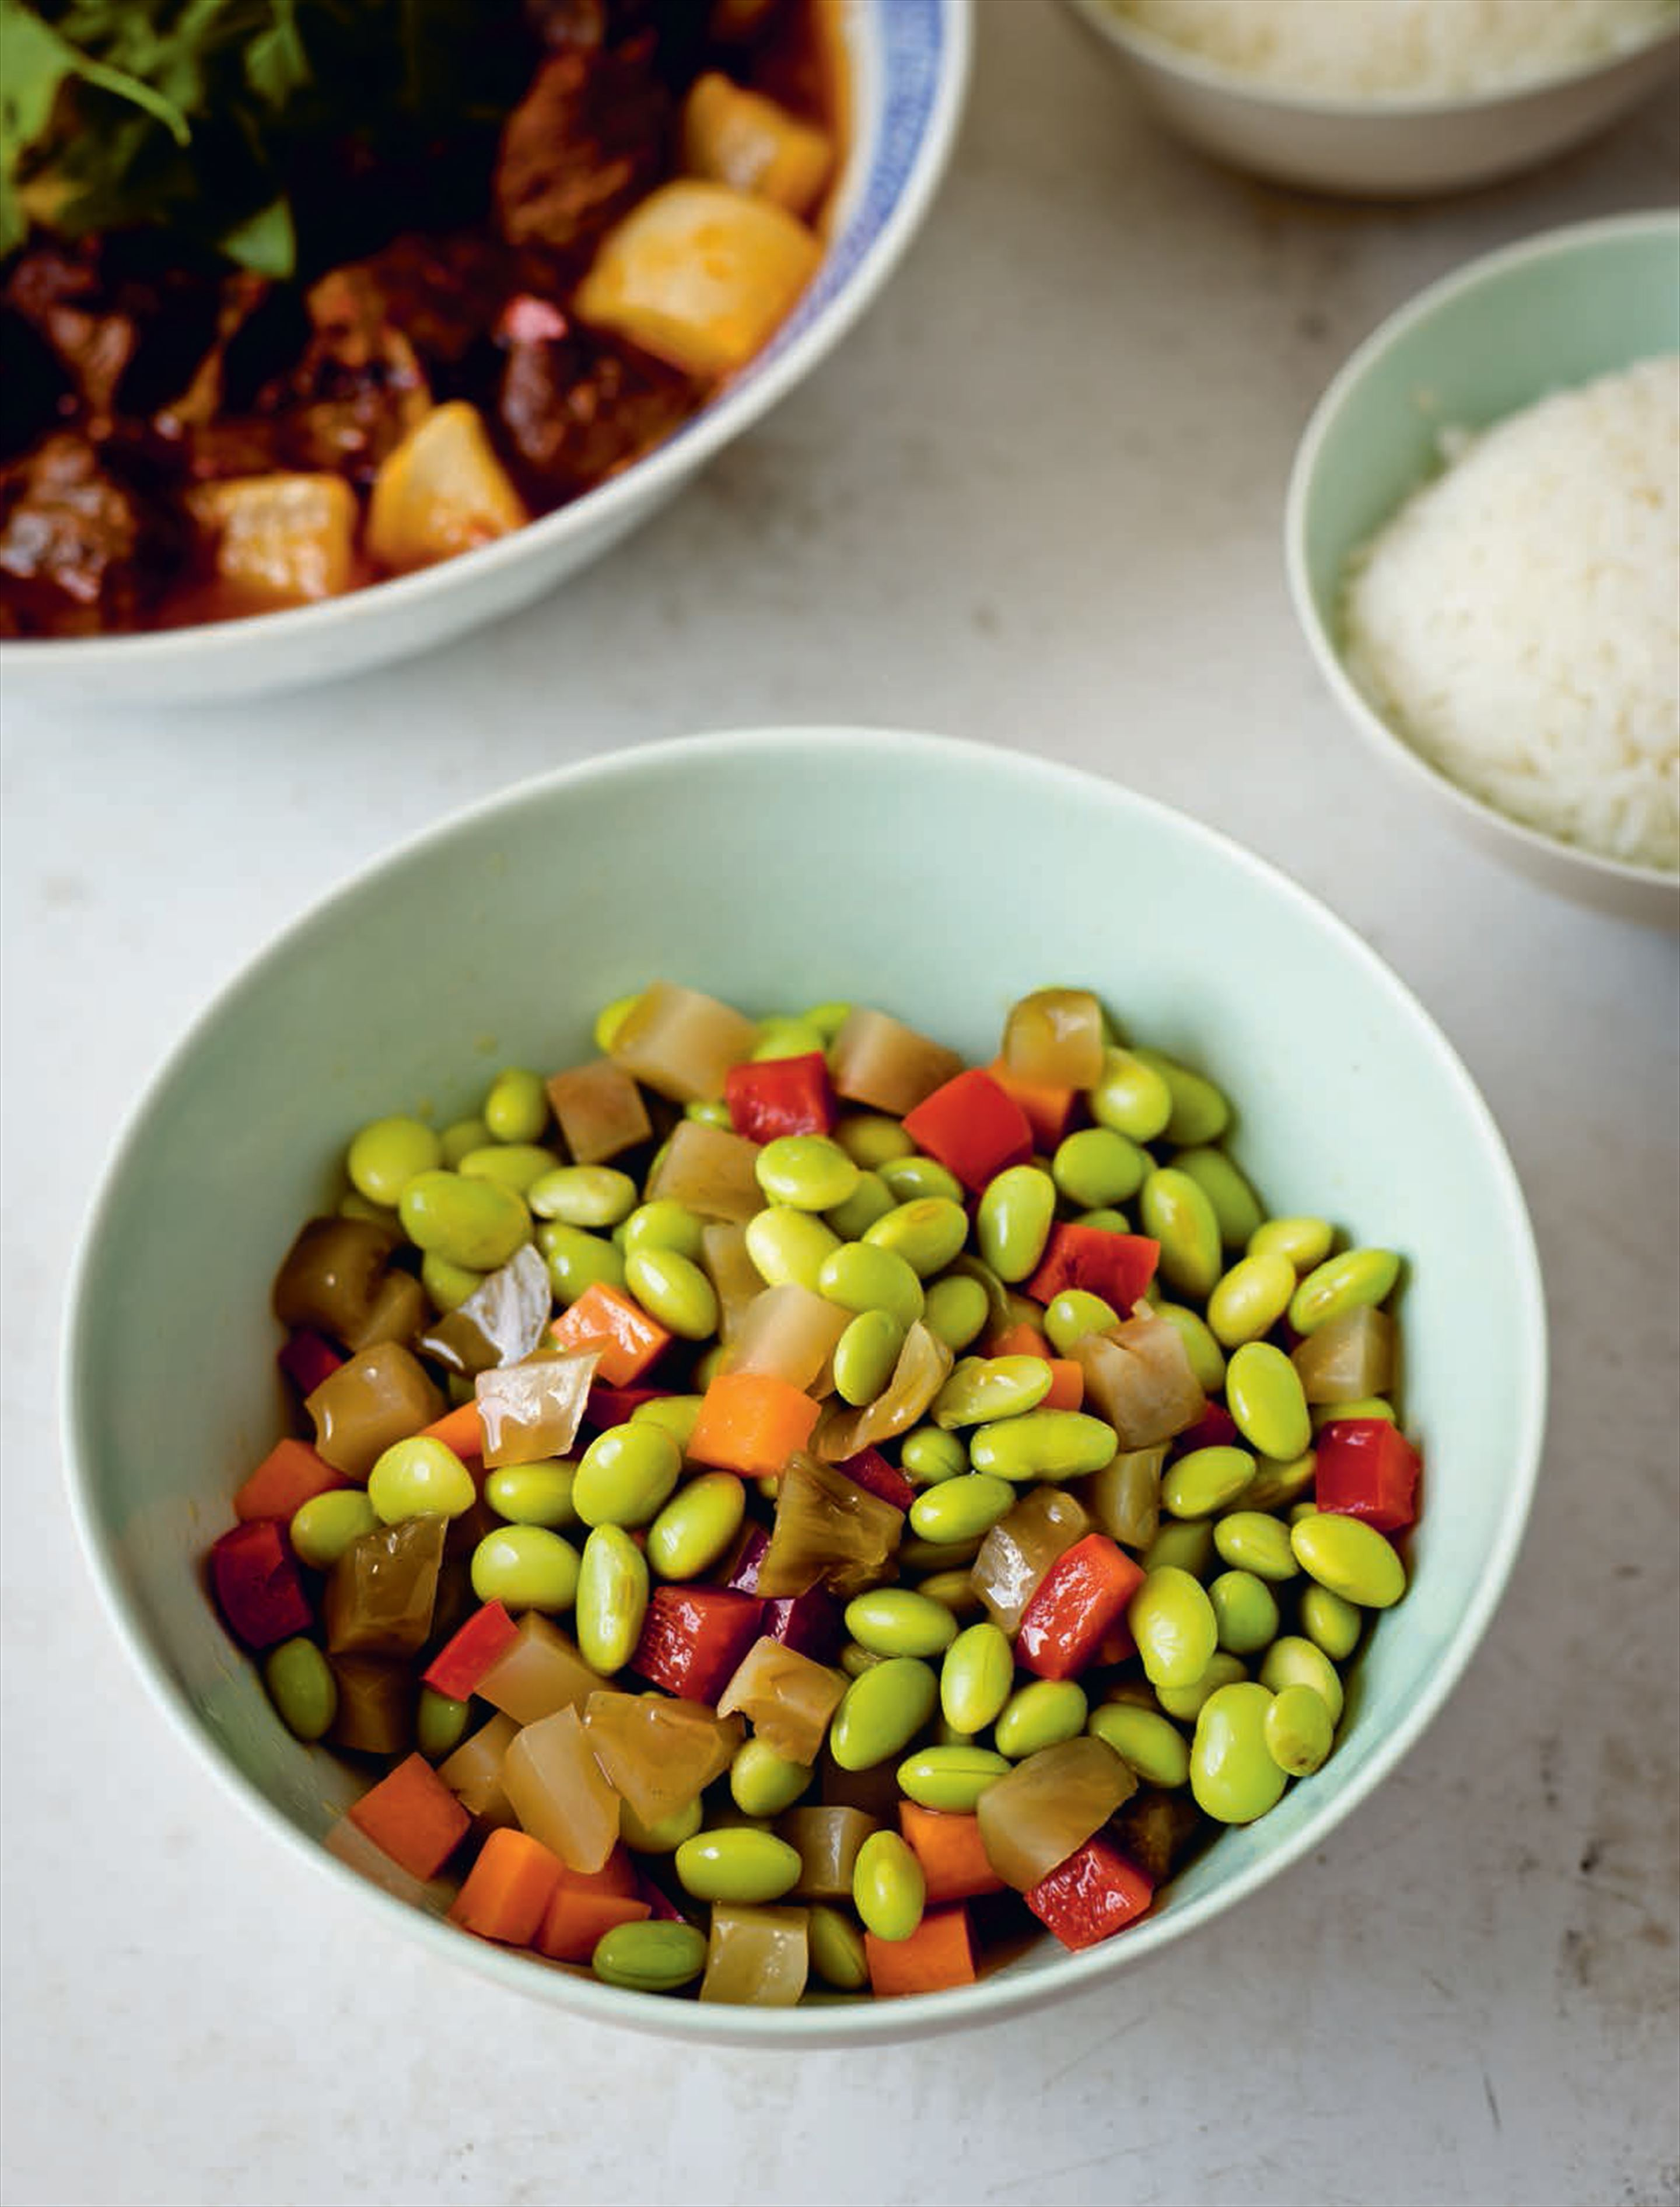 Sichuanese green soy bean salad